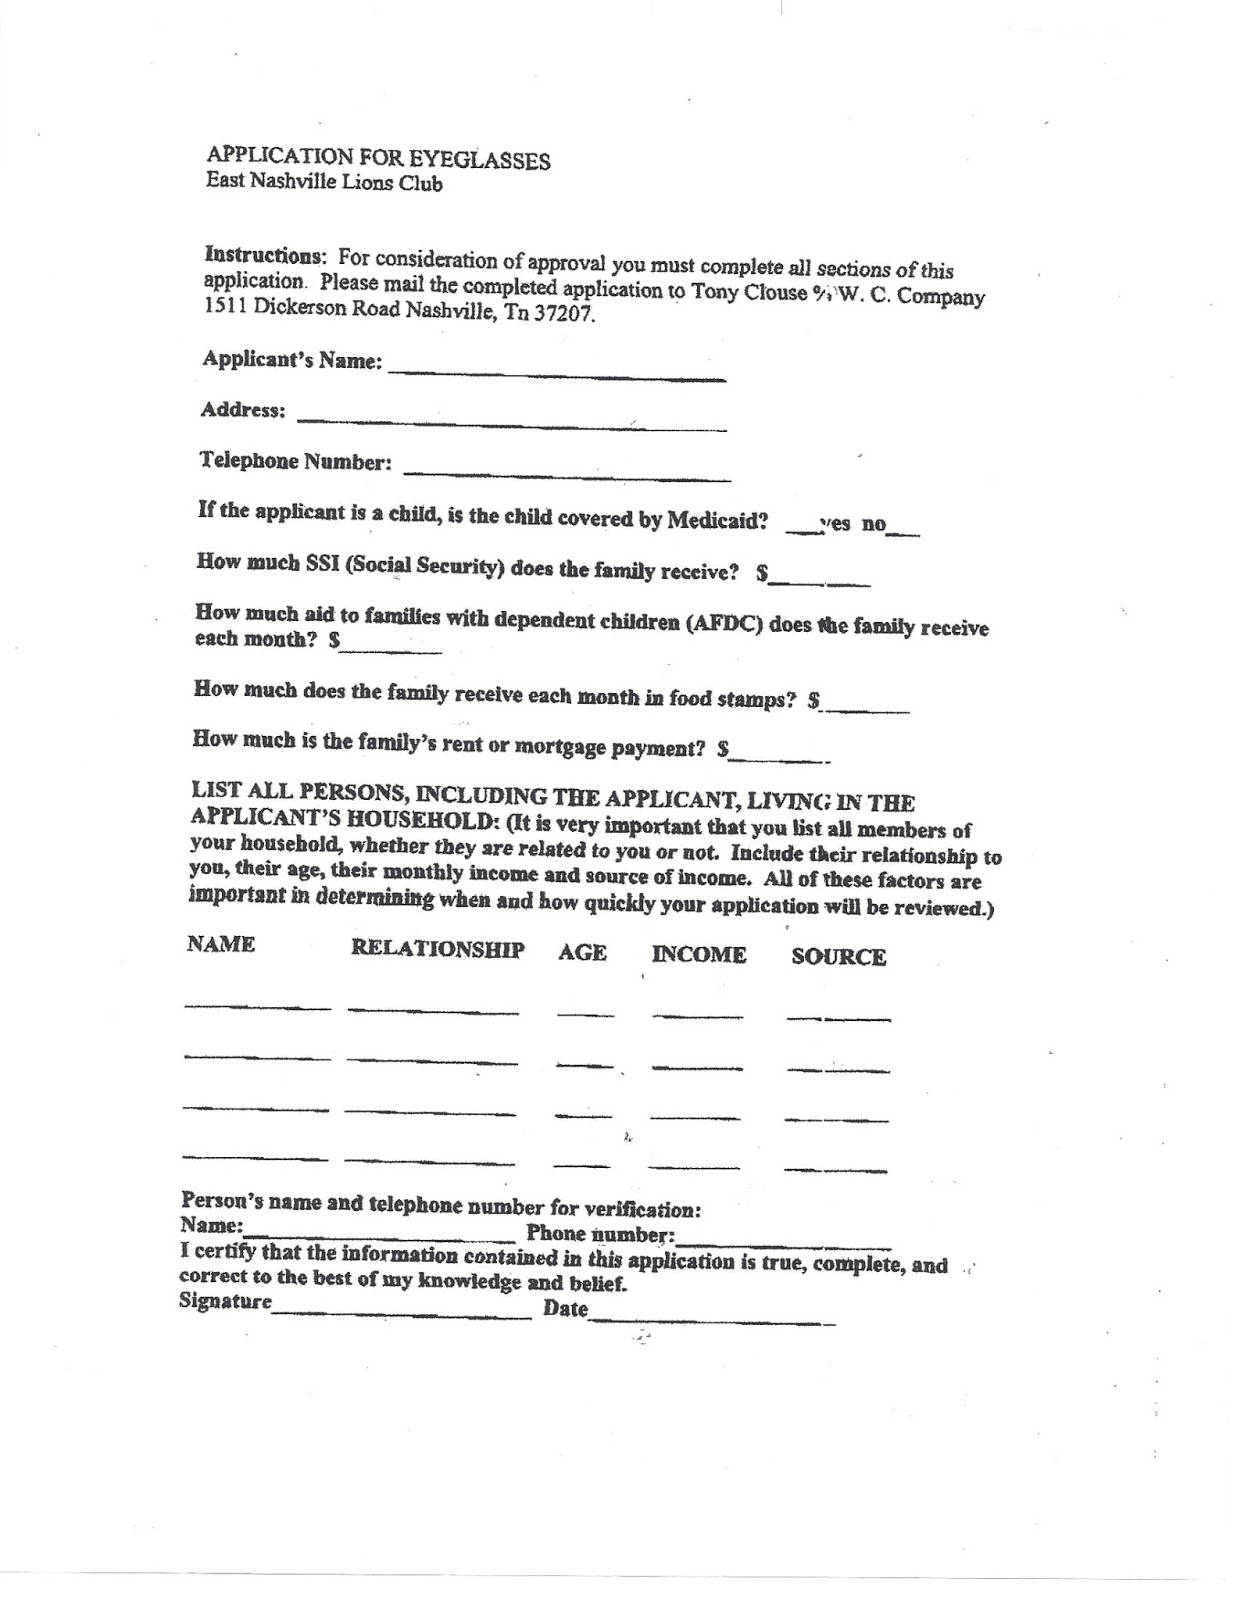 lions club eyeglasses assistance application